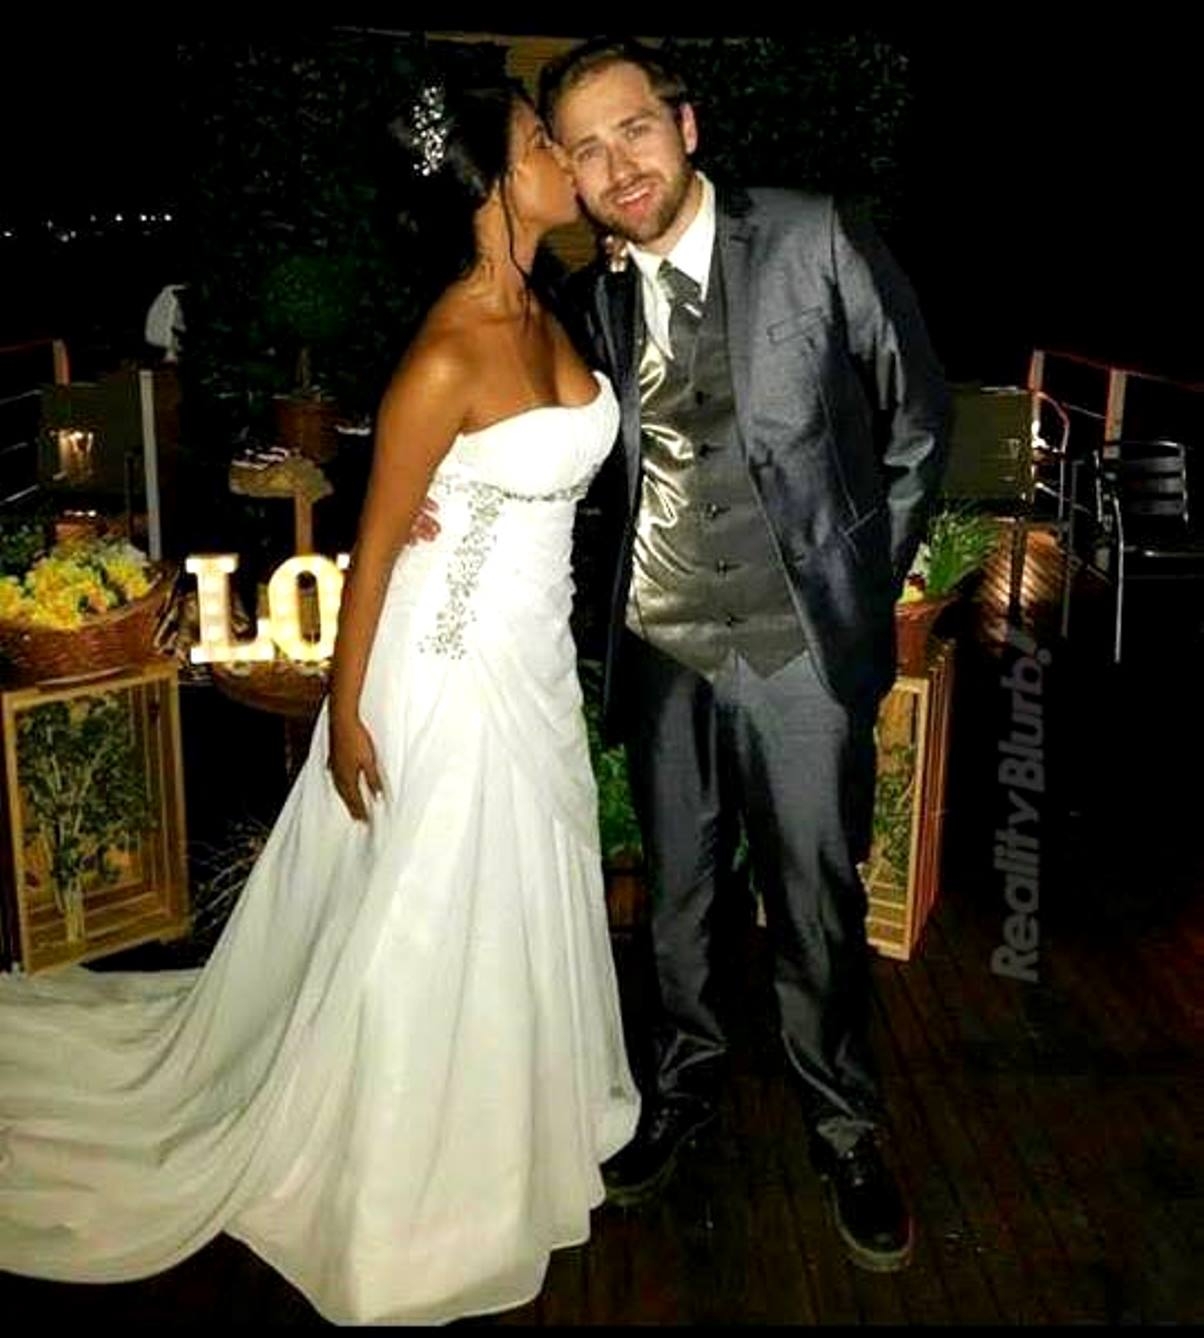 PHOTOS: Before The 90 Days' Paul and Karine Are Married! Will They Appear On 90 Day Fiance?